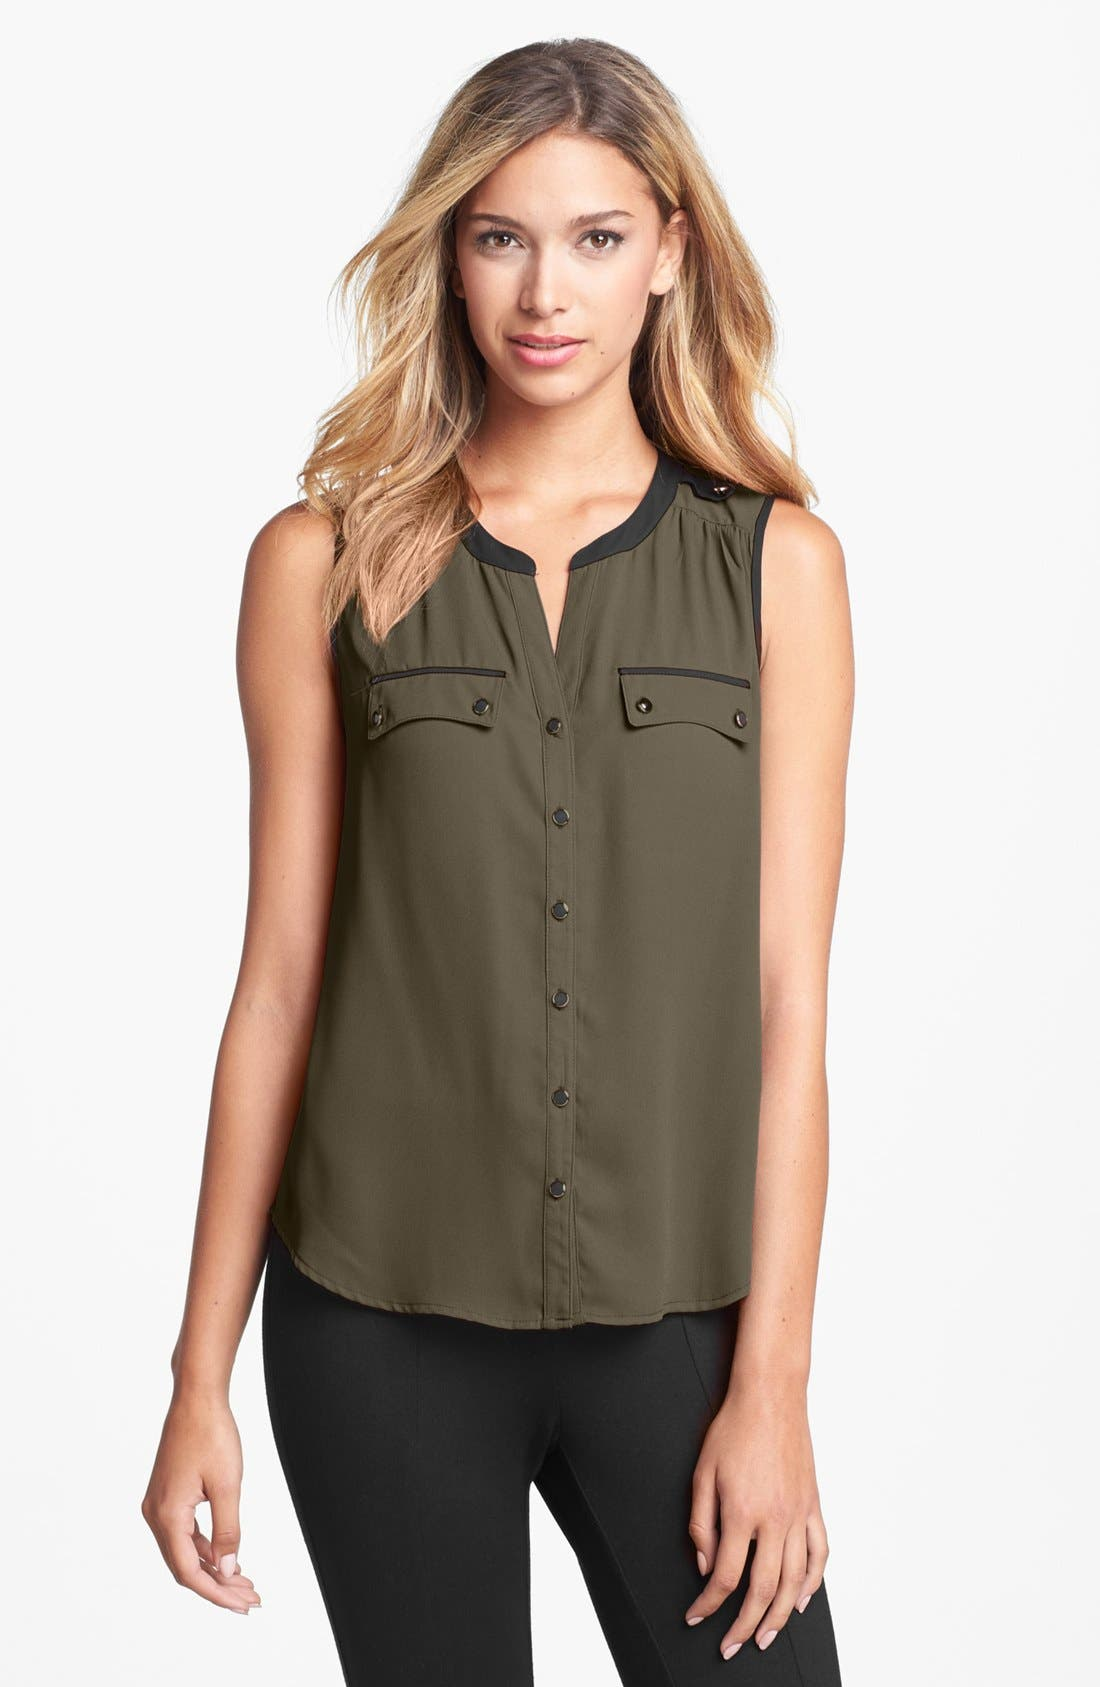 Alternate Image 1 Selected - Daniel Rainn Contrast Trim Sleeveless Blouse (Petite)